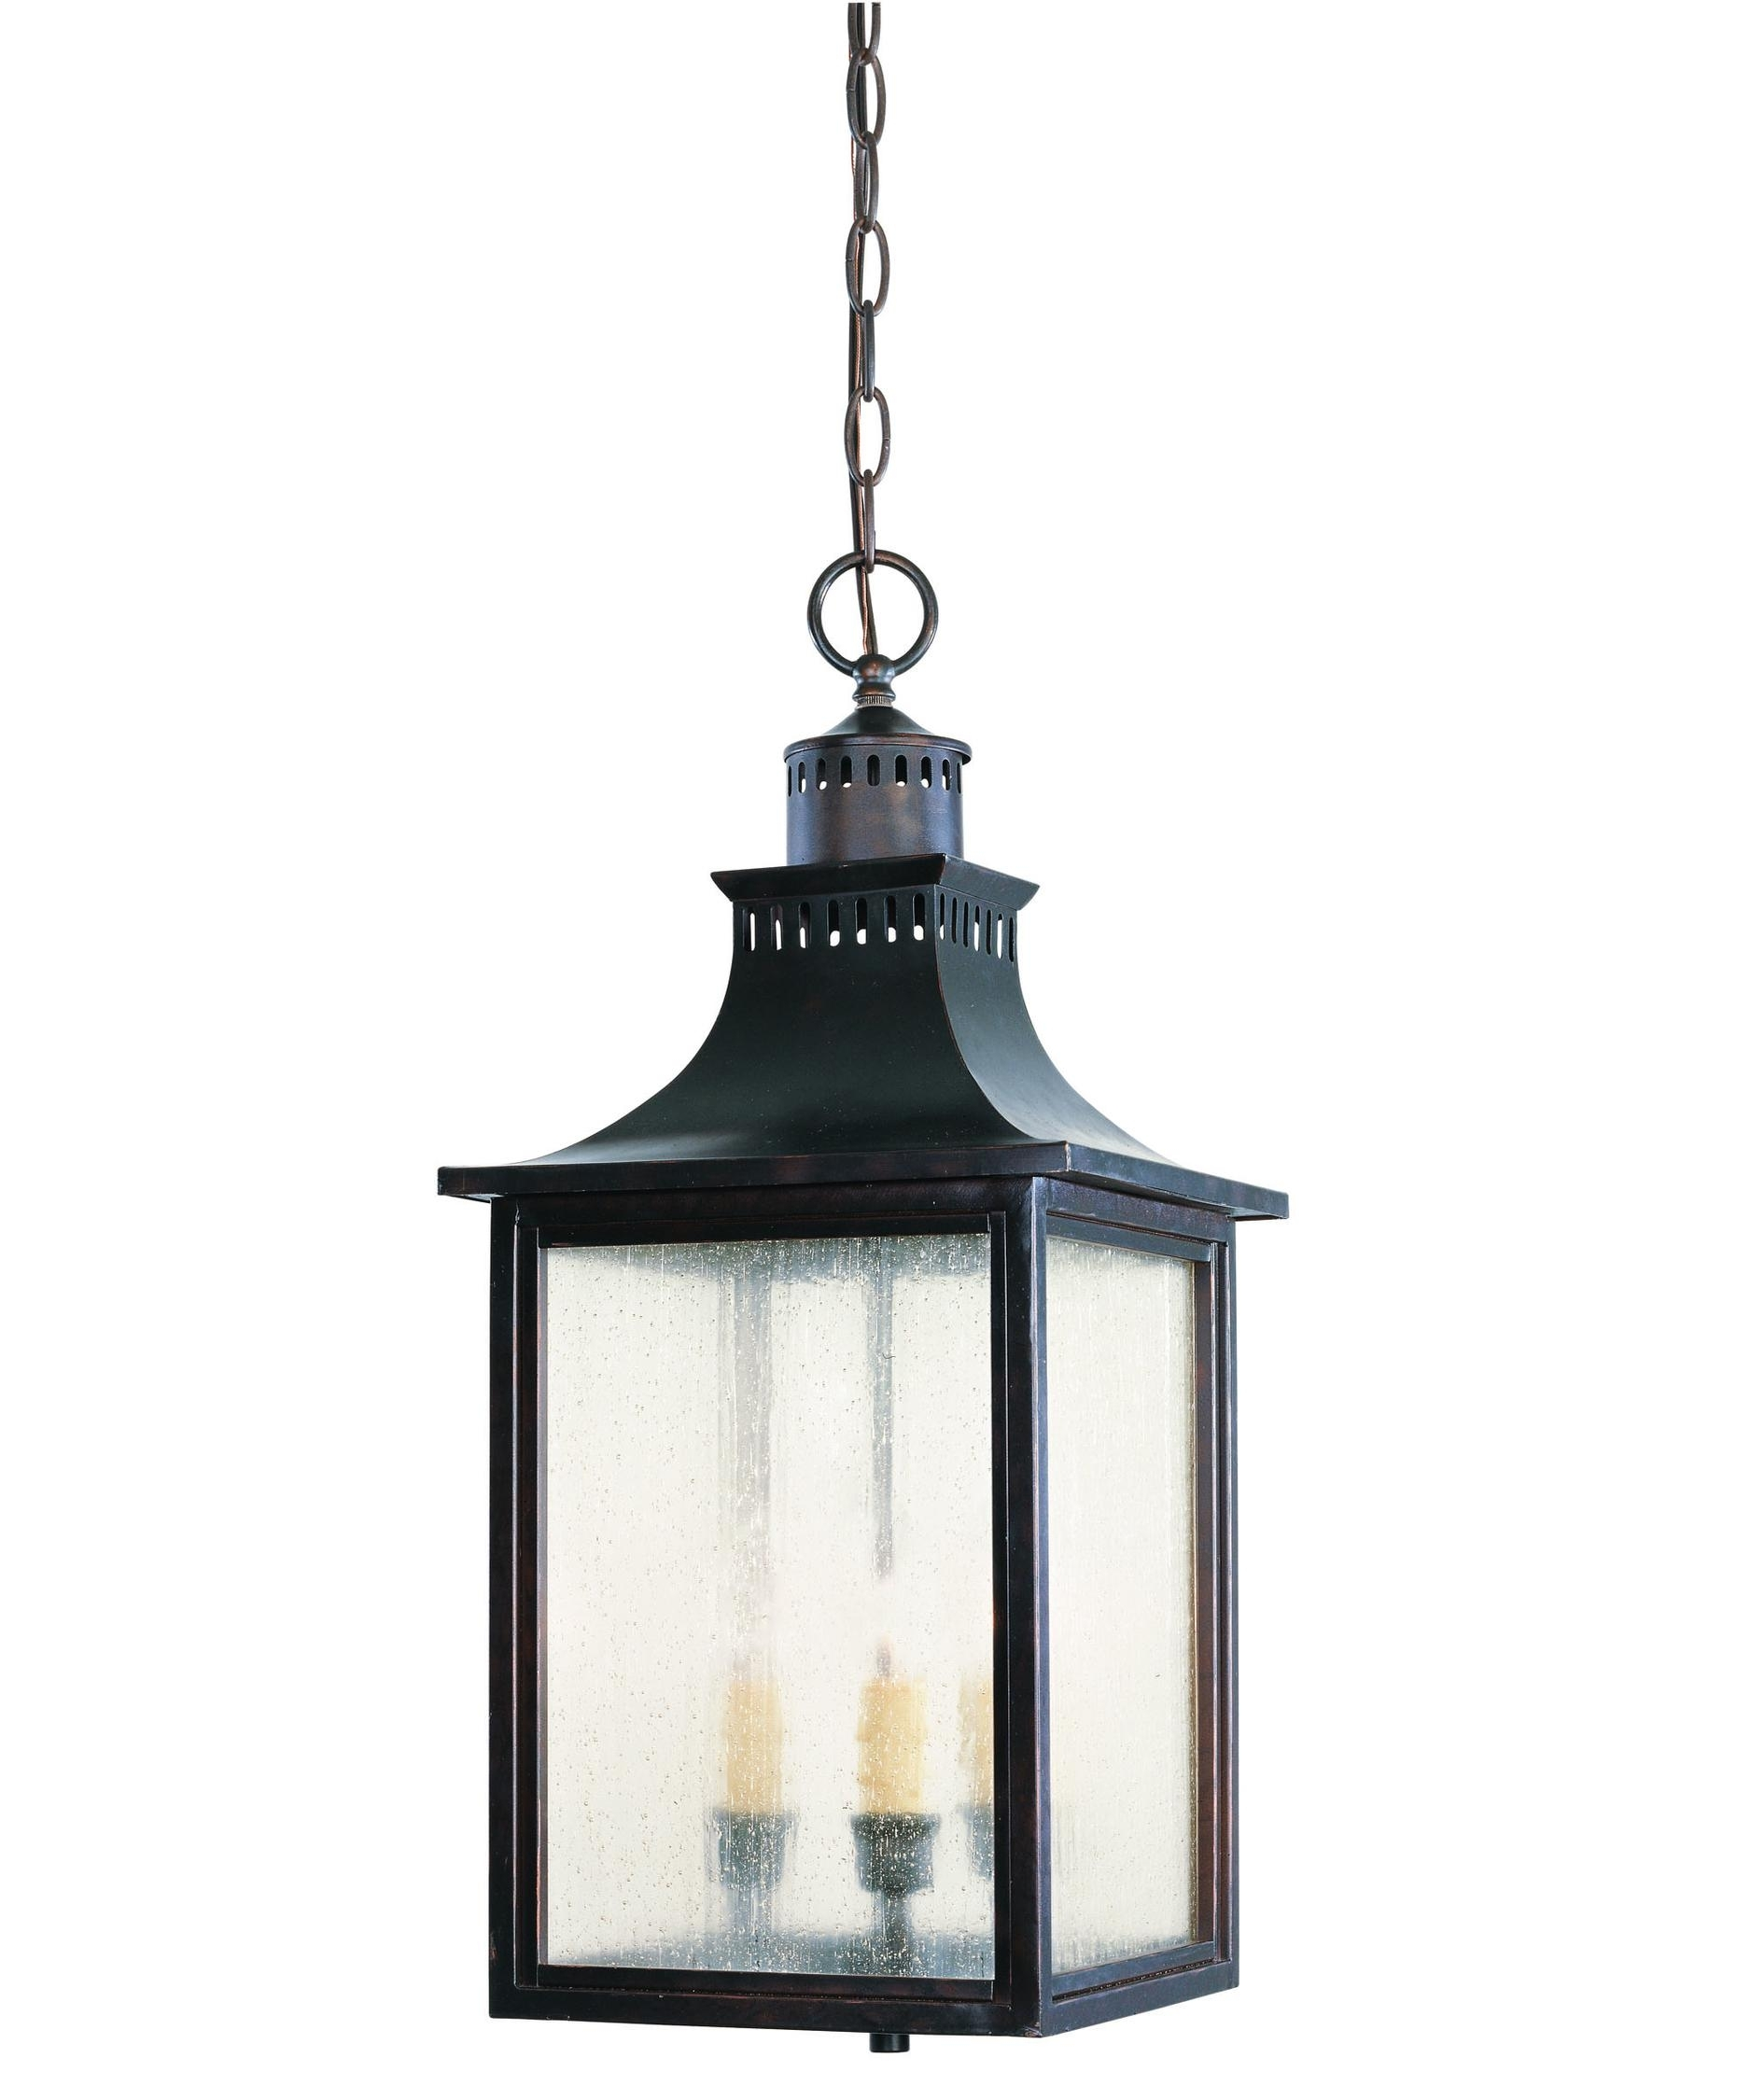 Savoy House 5-256 Monte Grande 10 Inch Wide 3 Light Outdoor Hanging within Outdoor Hanging Electric Lanterns (Image 19 of 20)